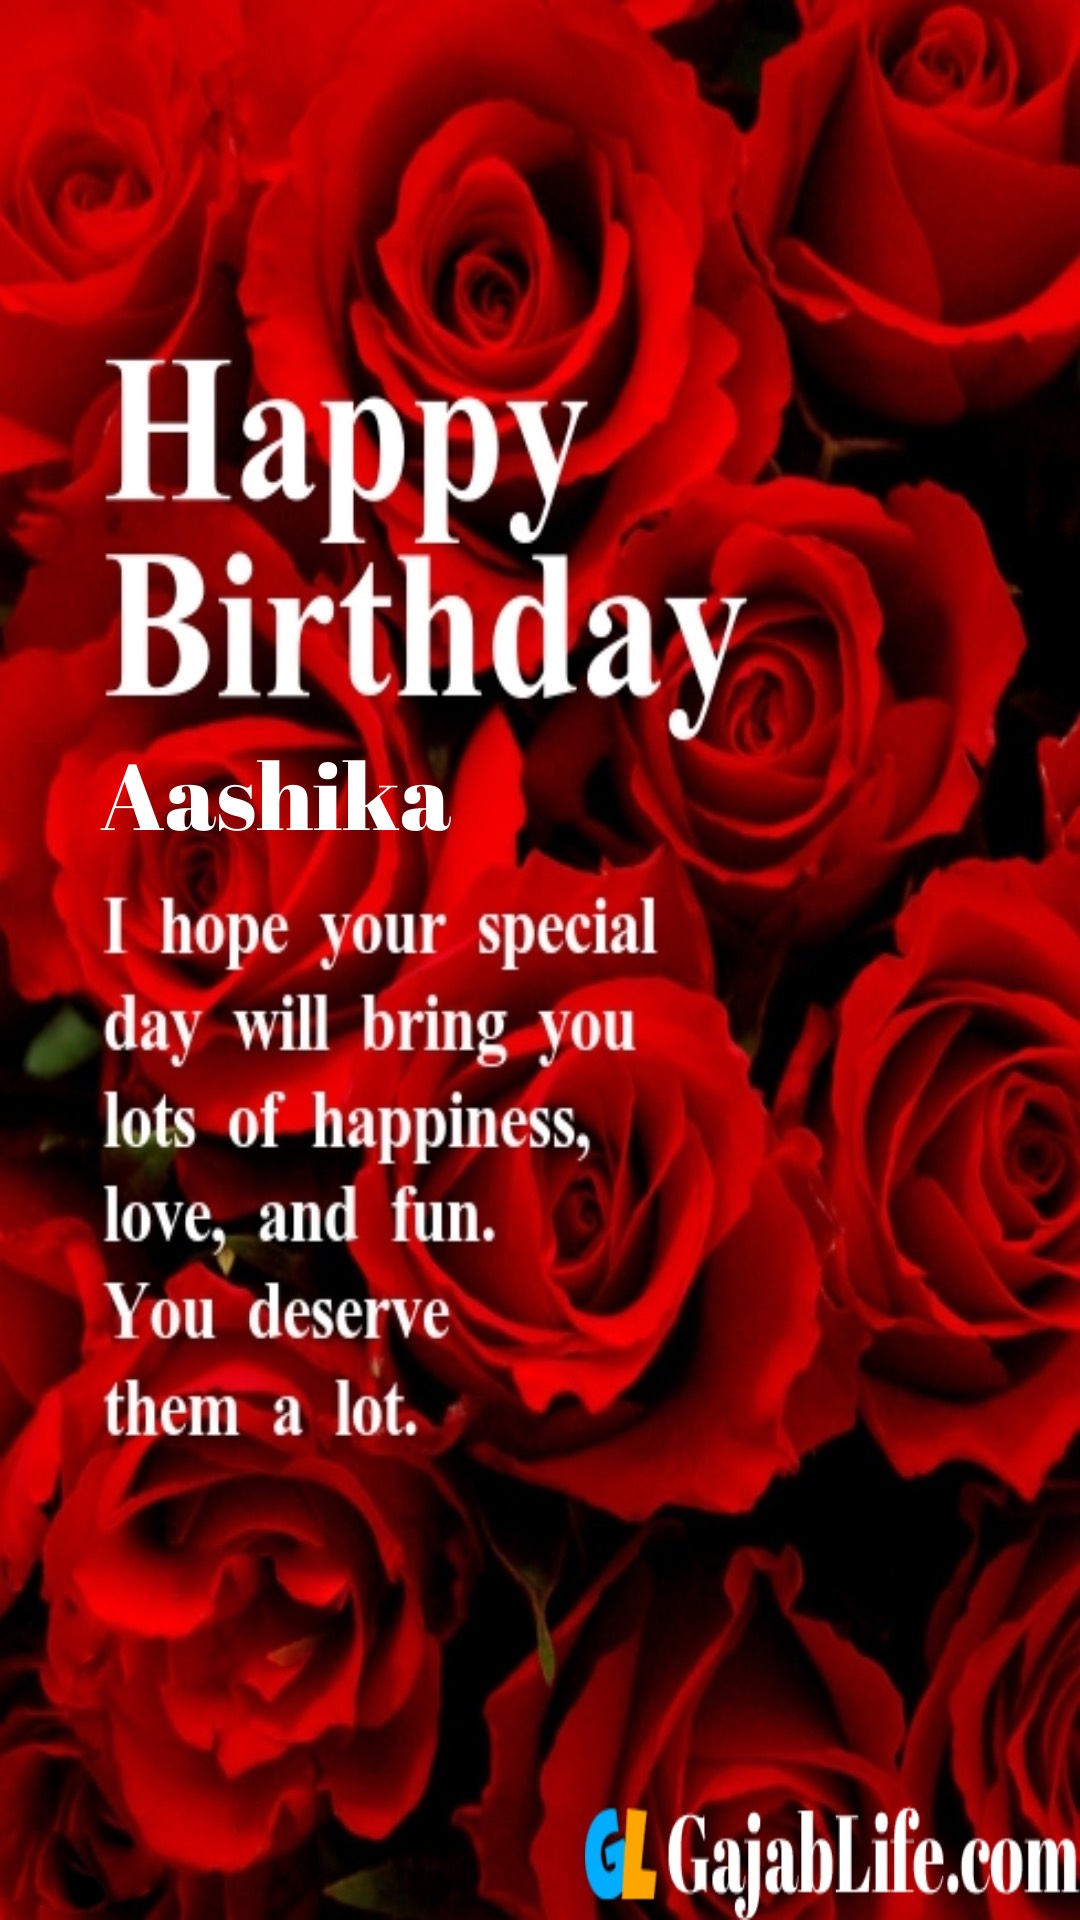 Aashika birthday greeting card with rose & love